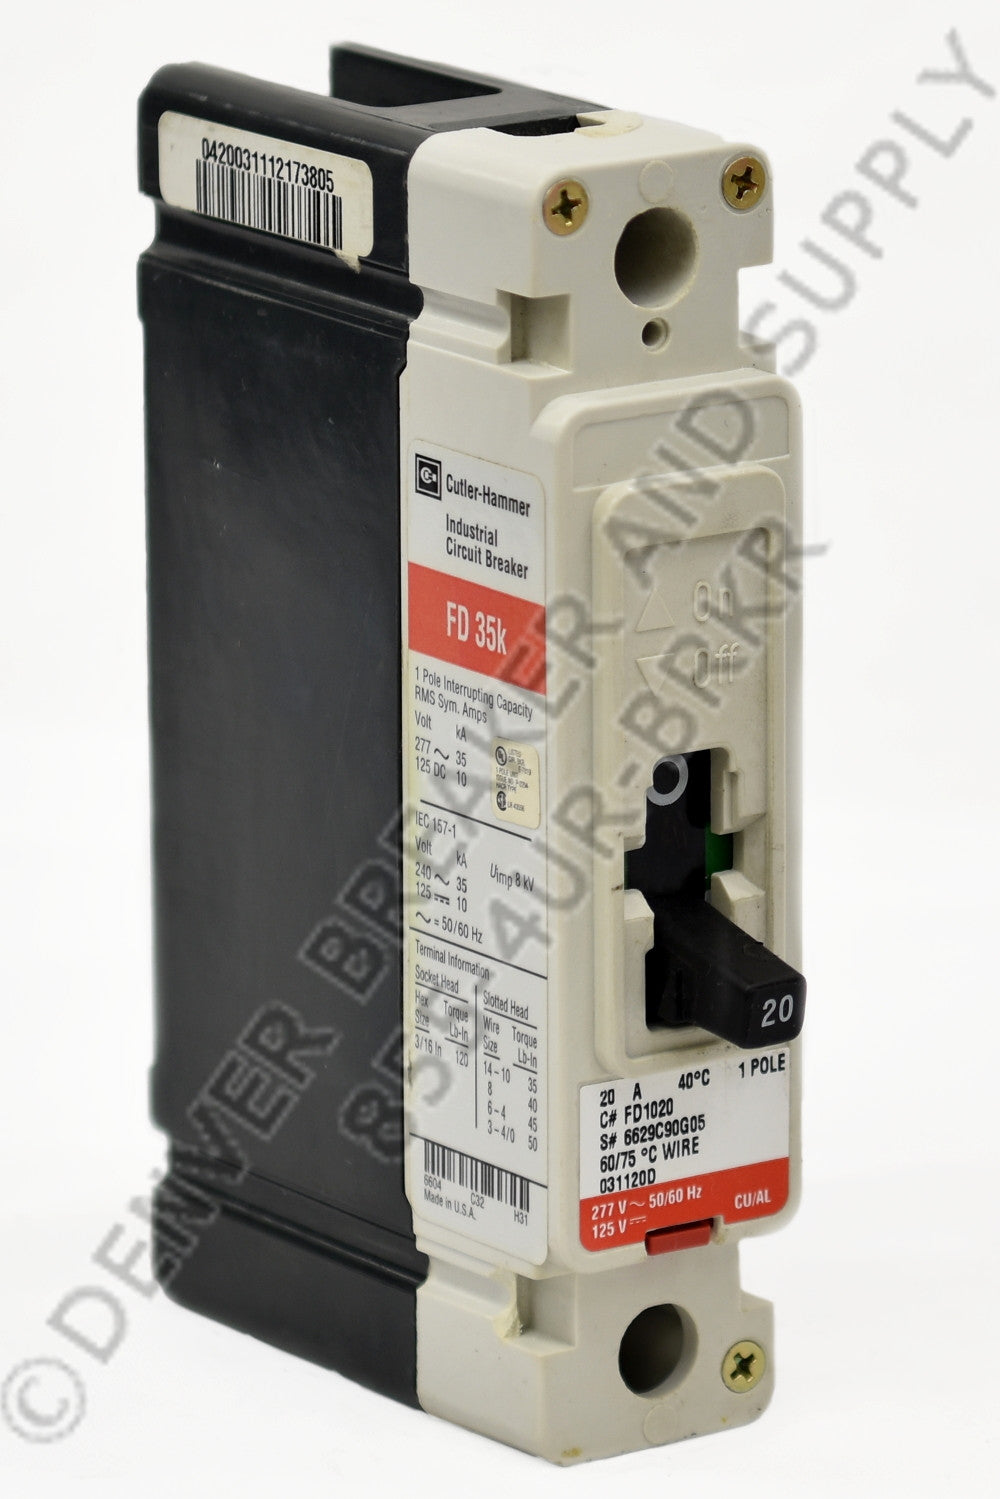 Cutler Hammer FD1040 Circuit Breakers